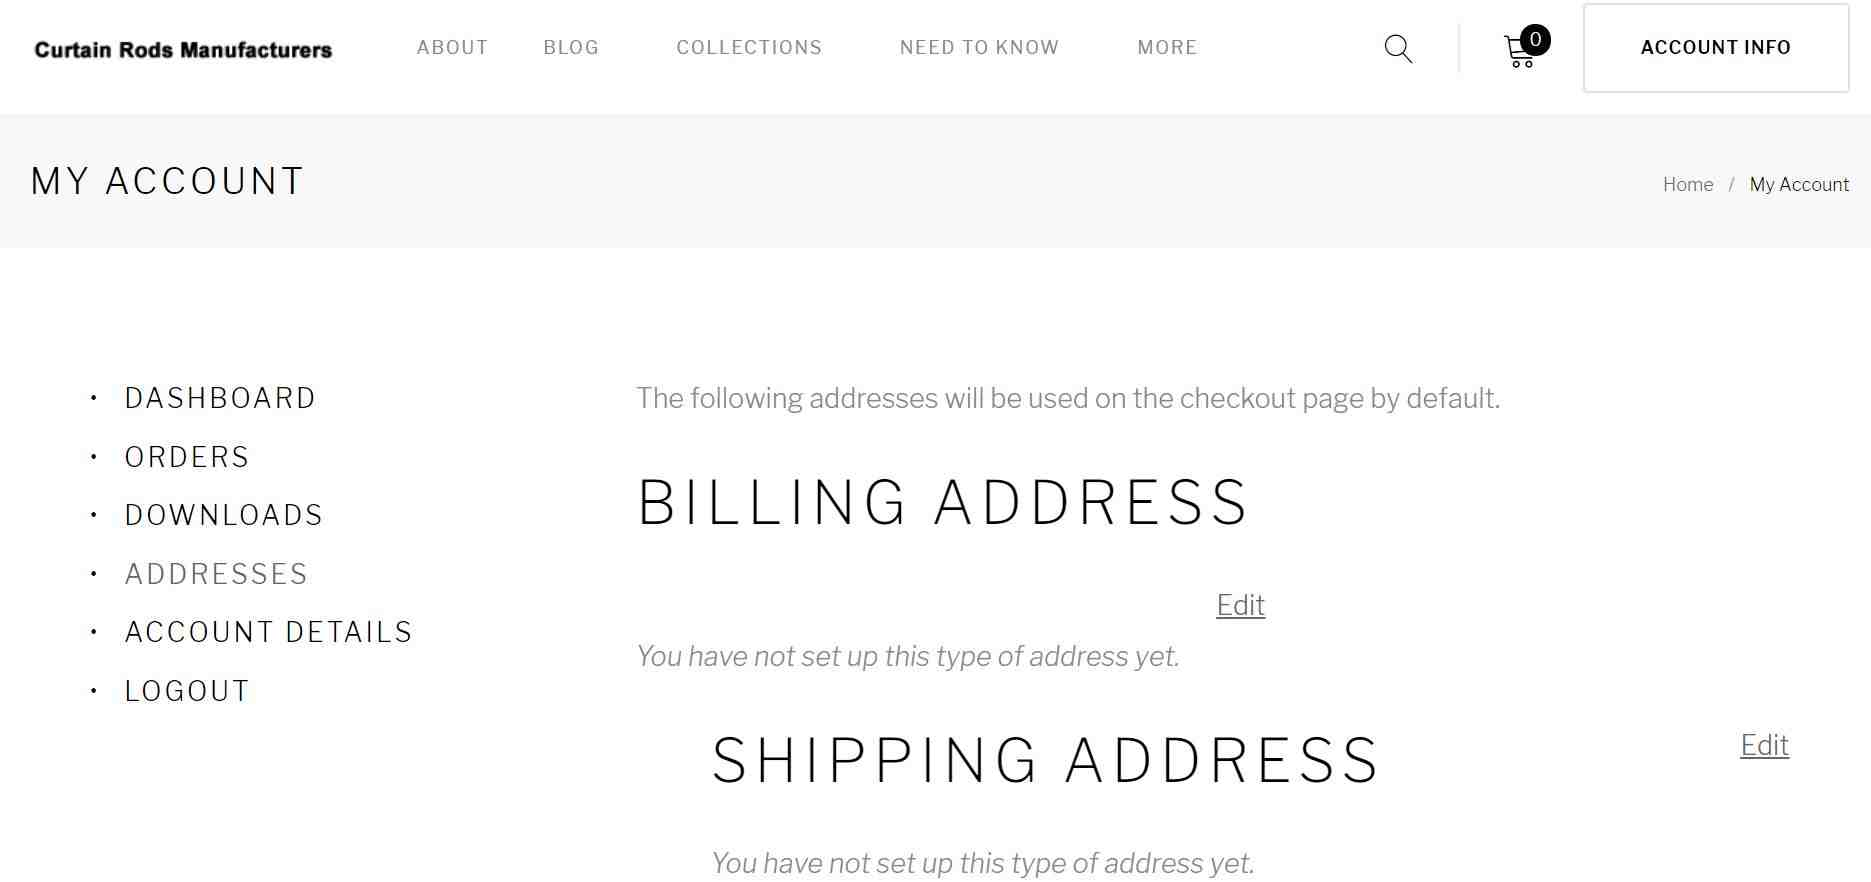 Please provide your Billing address and Shipping address both.